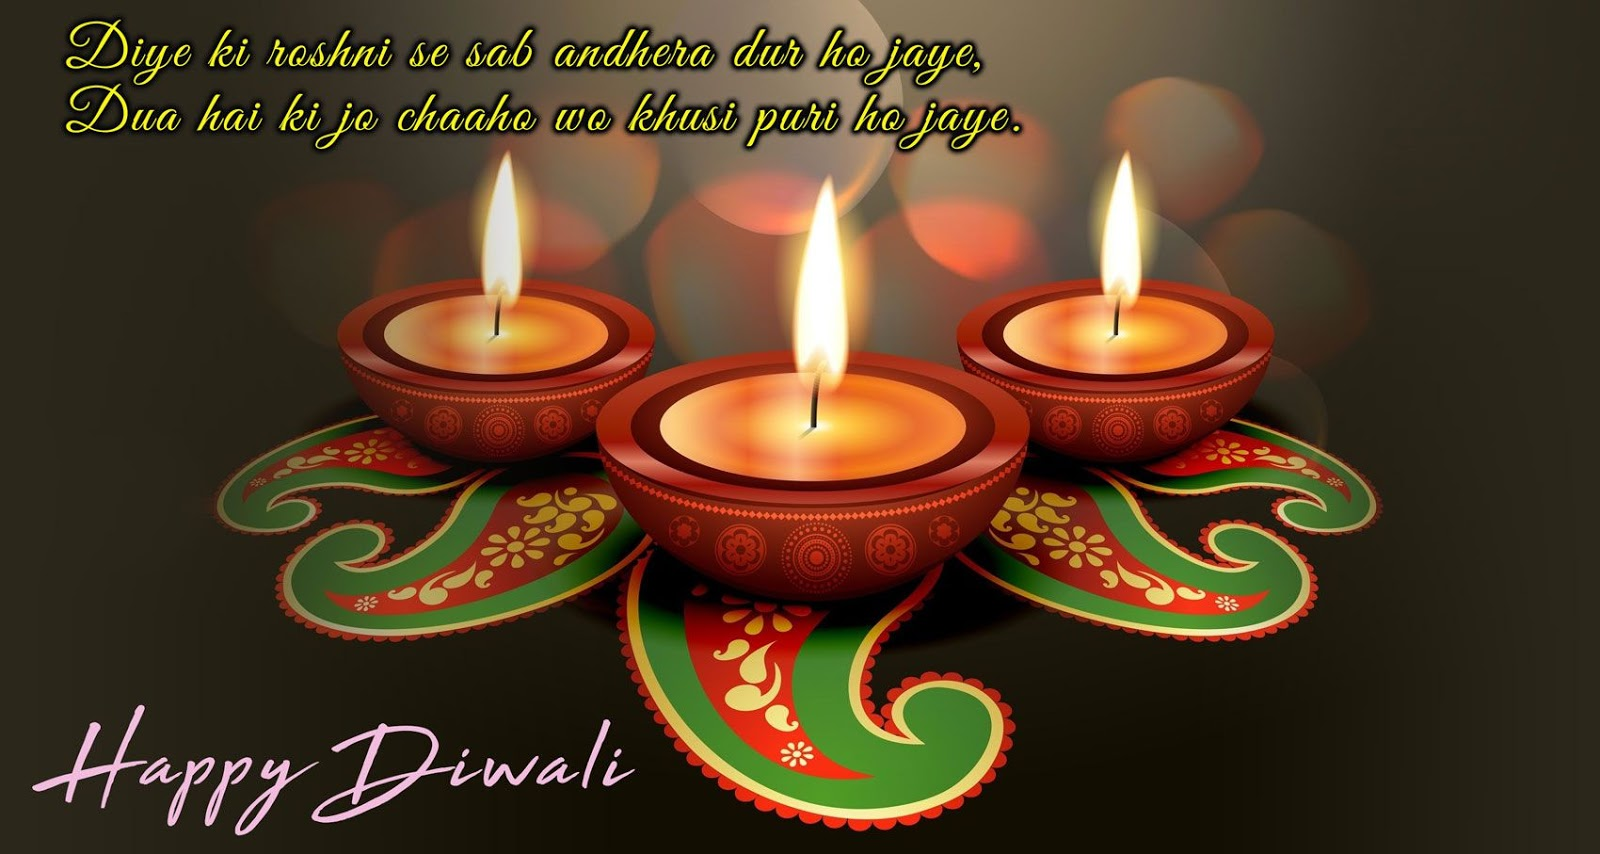 Diwali status in hindi and english 2018